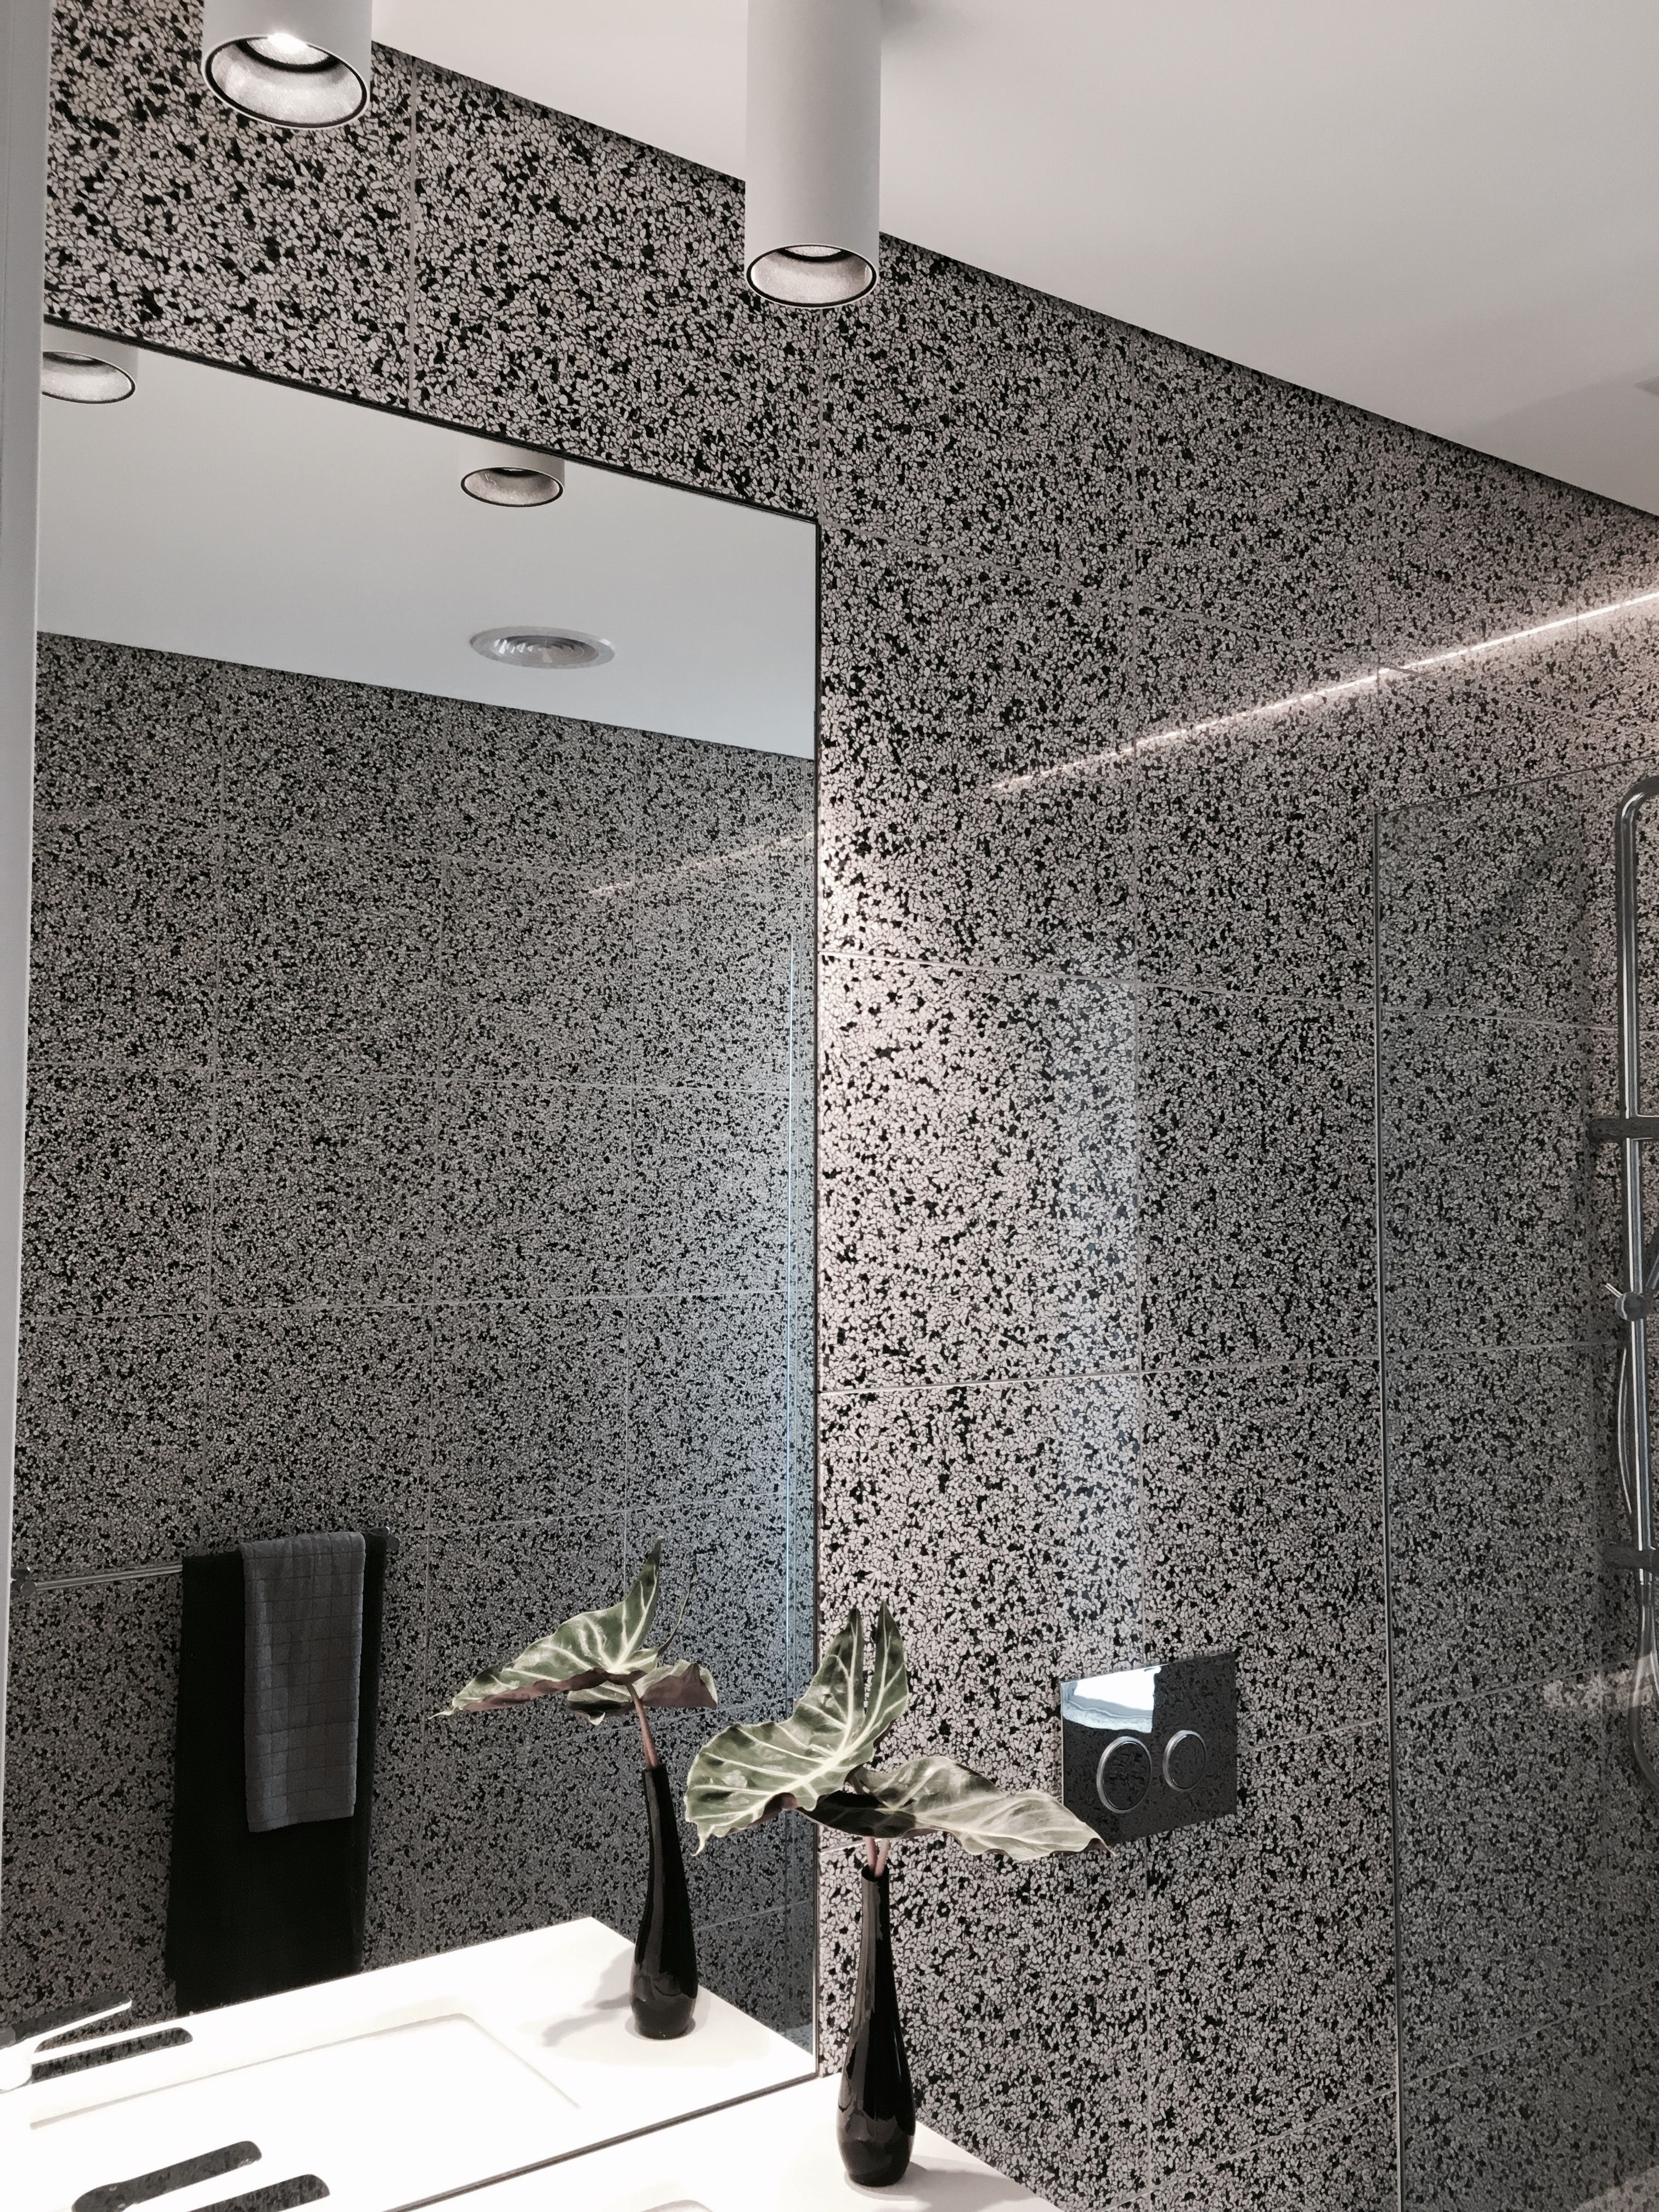 our terrazzo bathroom floor to wall terrazzo terrazzo supplied by signorino